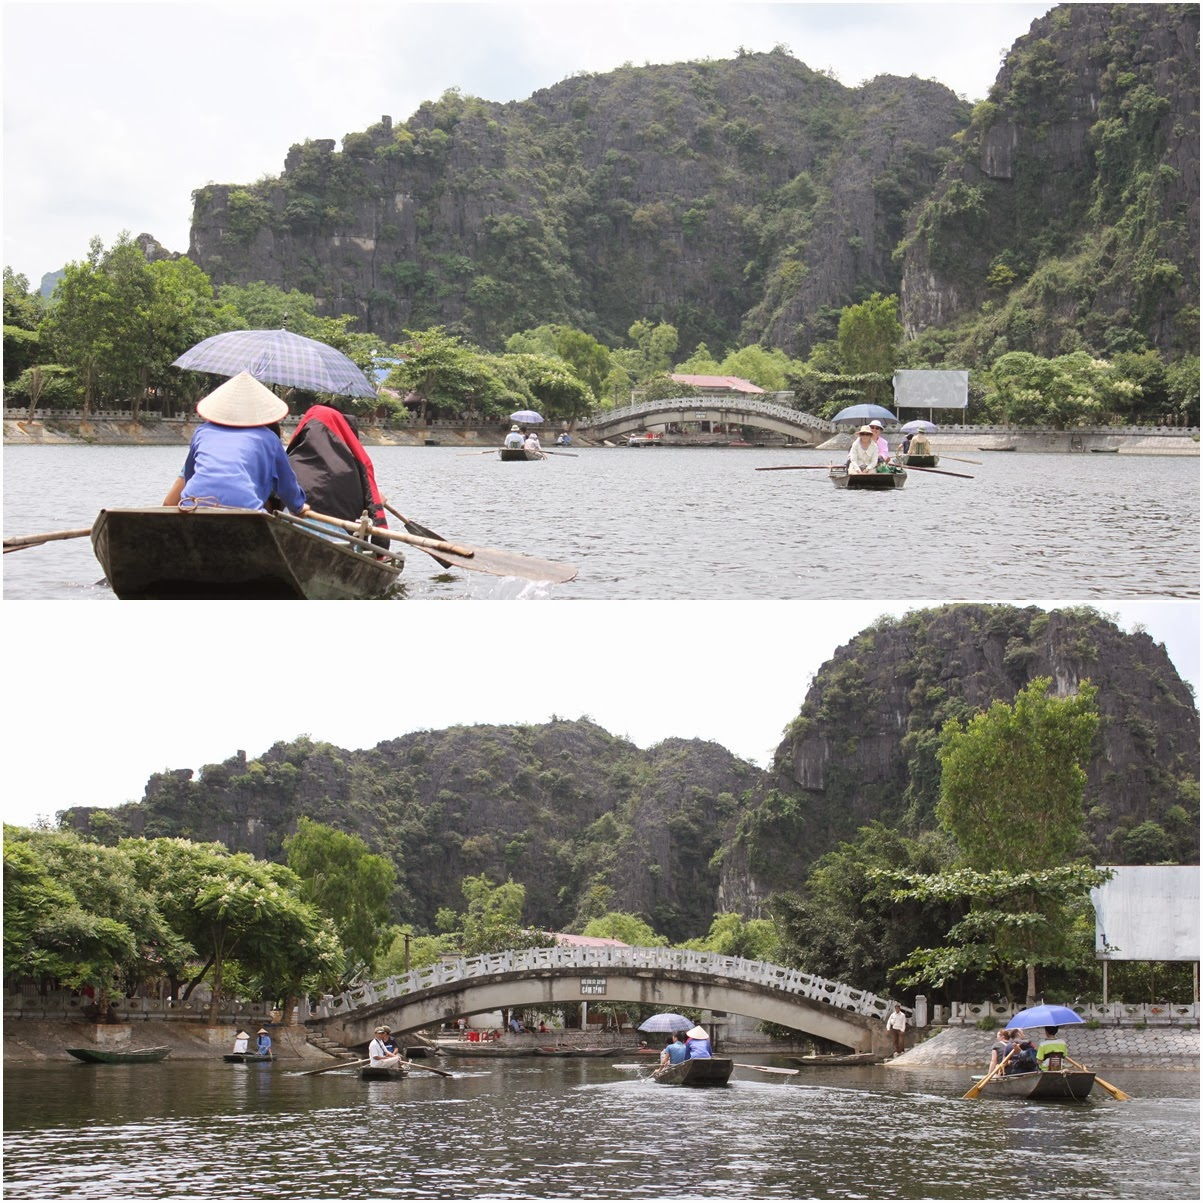 Heading out on the boat ride at Tam Coc Wharf near the city of Ninh Bình in northern Vietnam